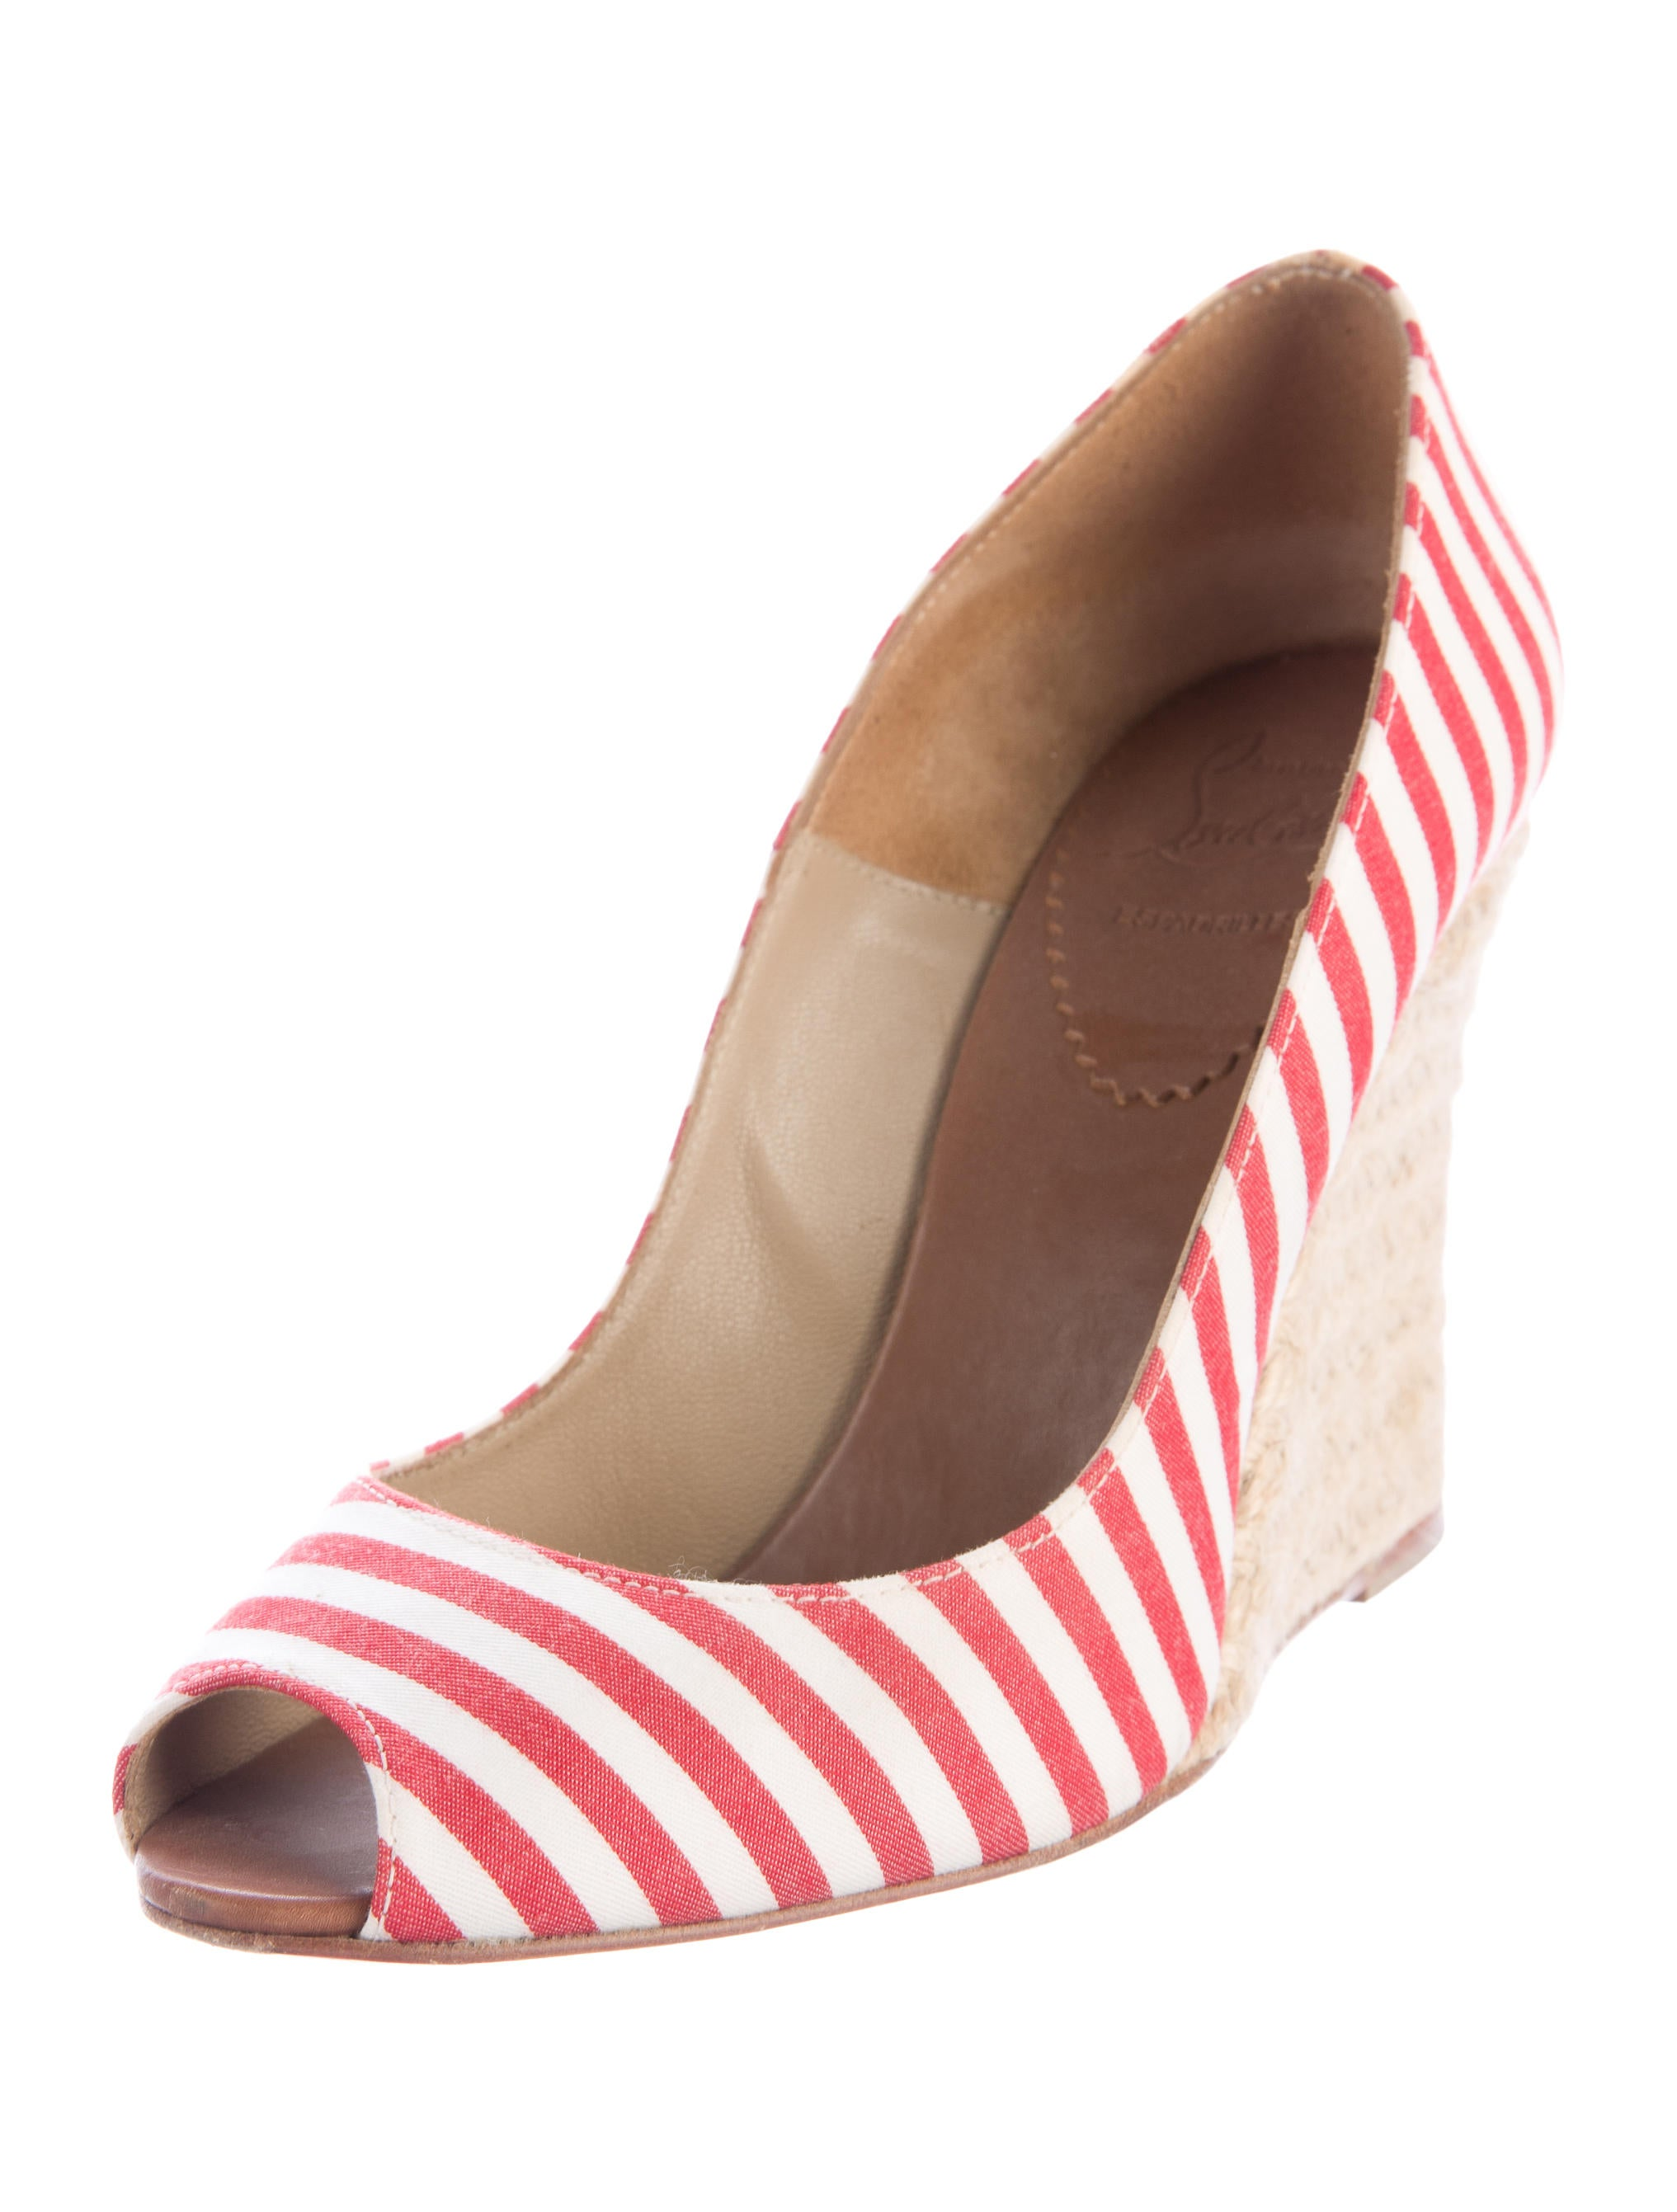 christian louboutin striped wedge pumps shoes cht72981